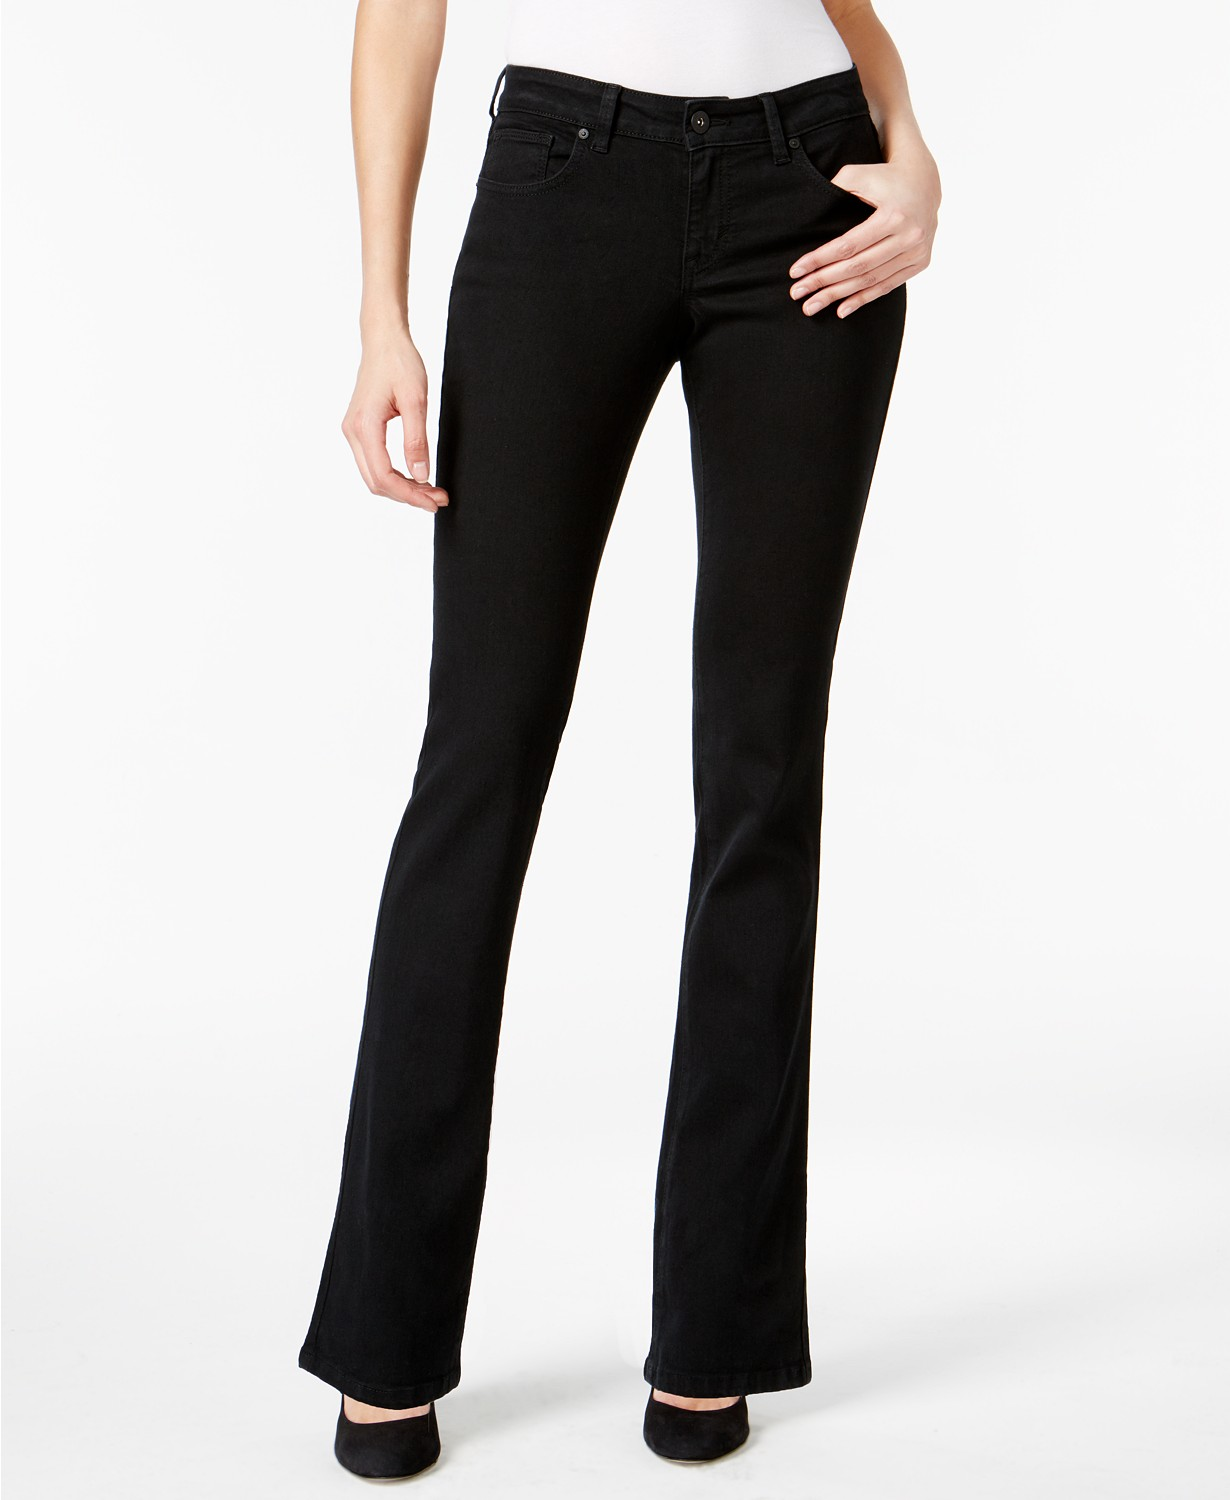 Style & co macy's jeans